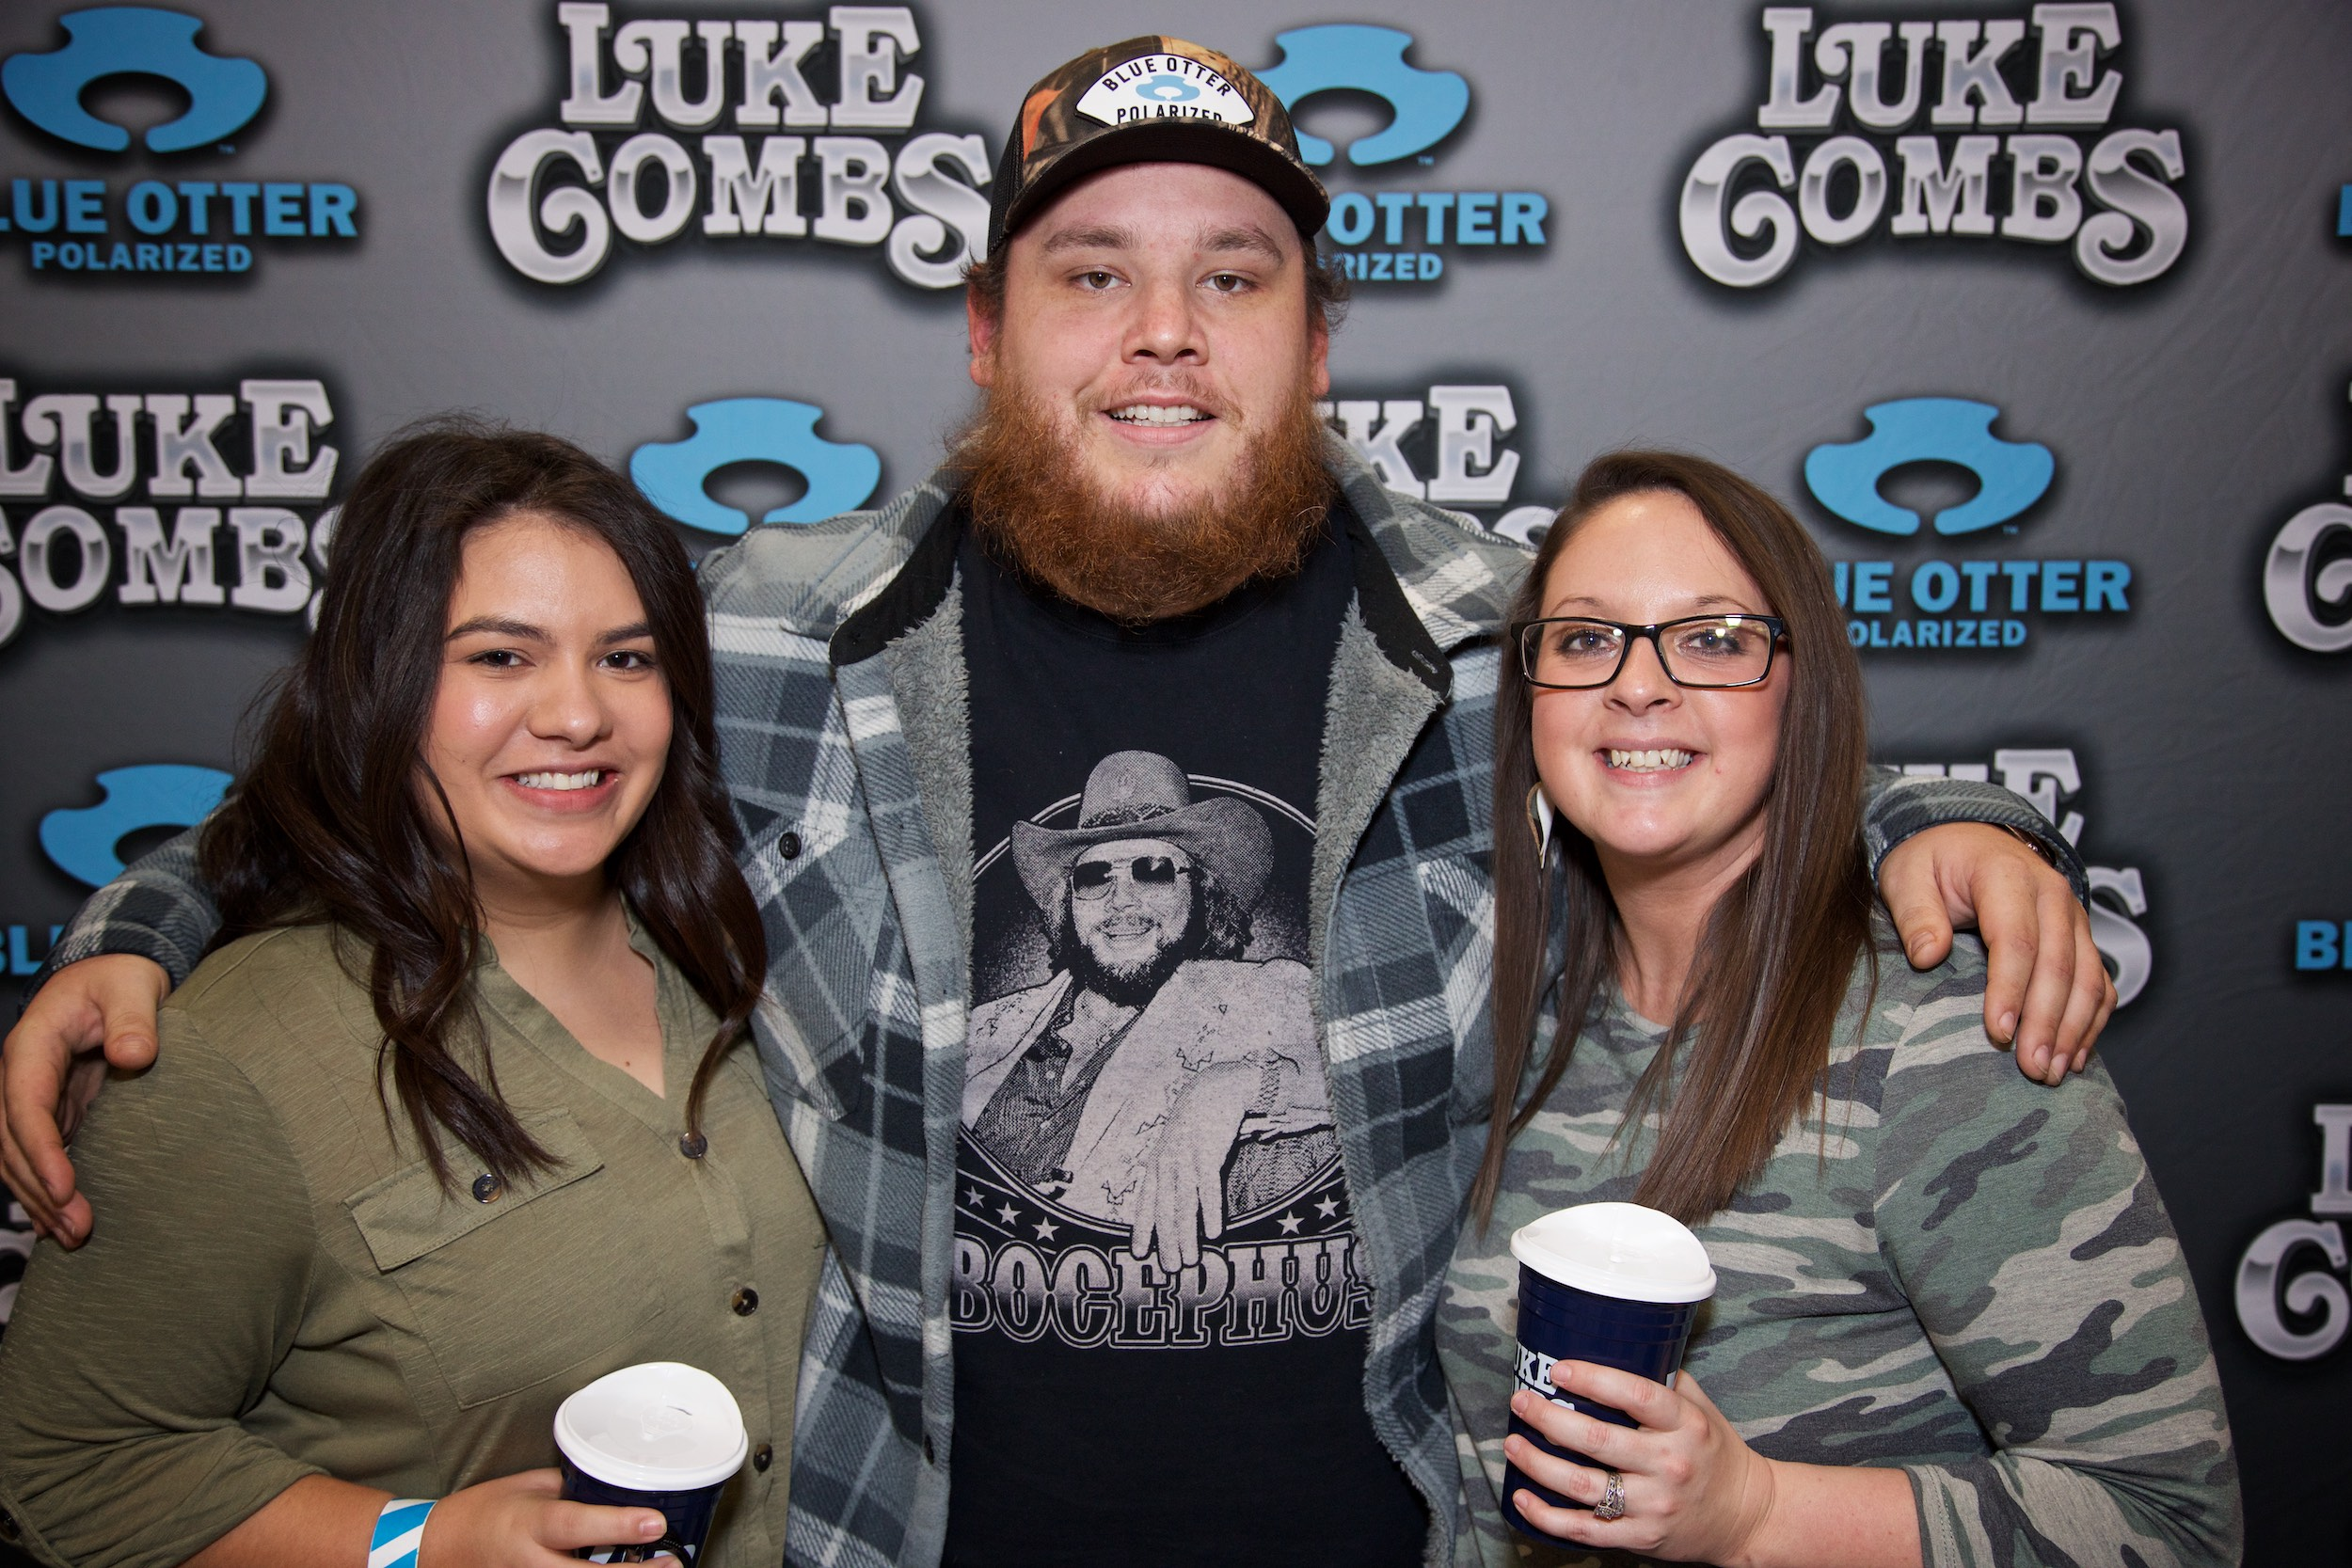 20200214_Luke_Combs_Lexington_0009